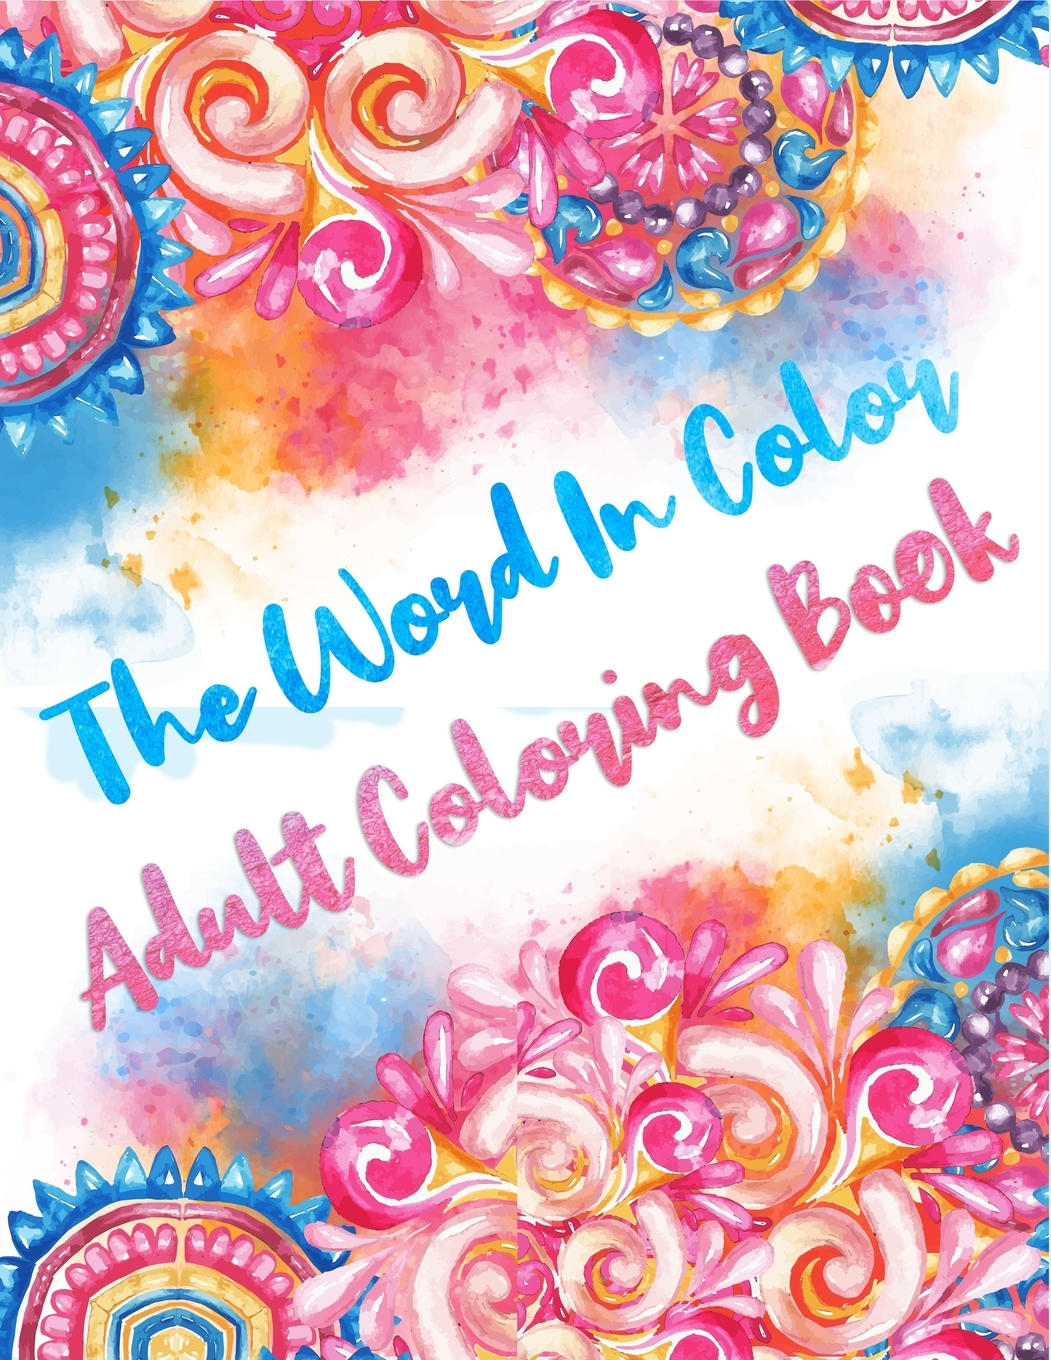 Adult Christian Coloring Books: The Word In Color Adult Coloring Book : The  One Year Bible For The Secret Scripture Book And Adult Christian Coloring  Books (Series #3) (Paperback) - Walmart.com - Walmart.com